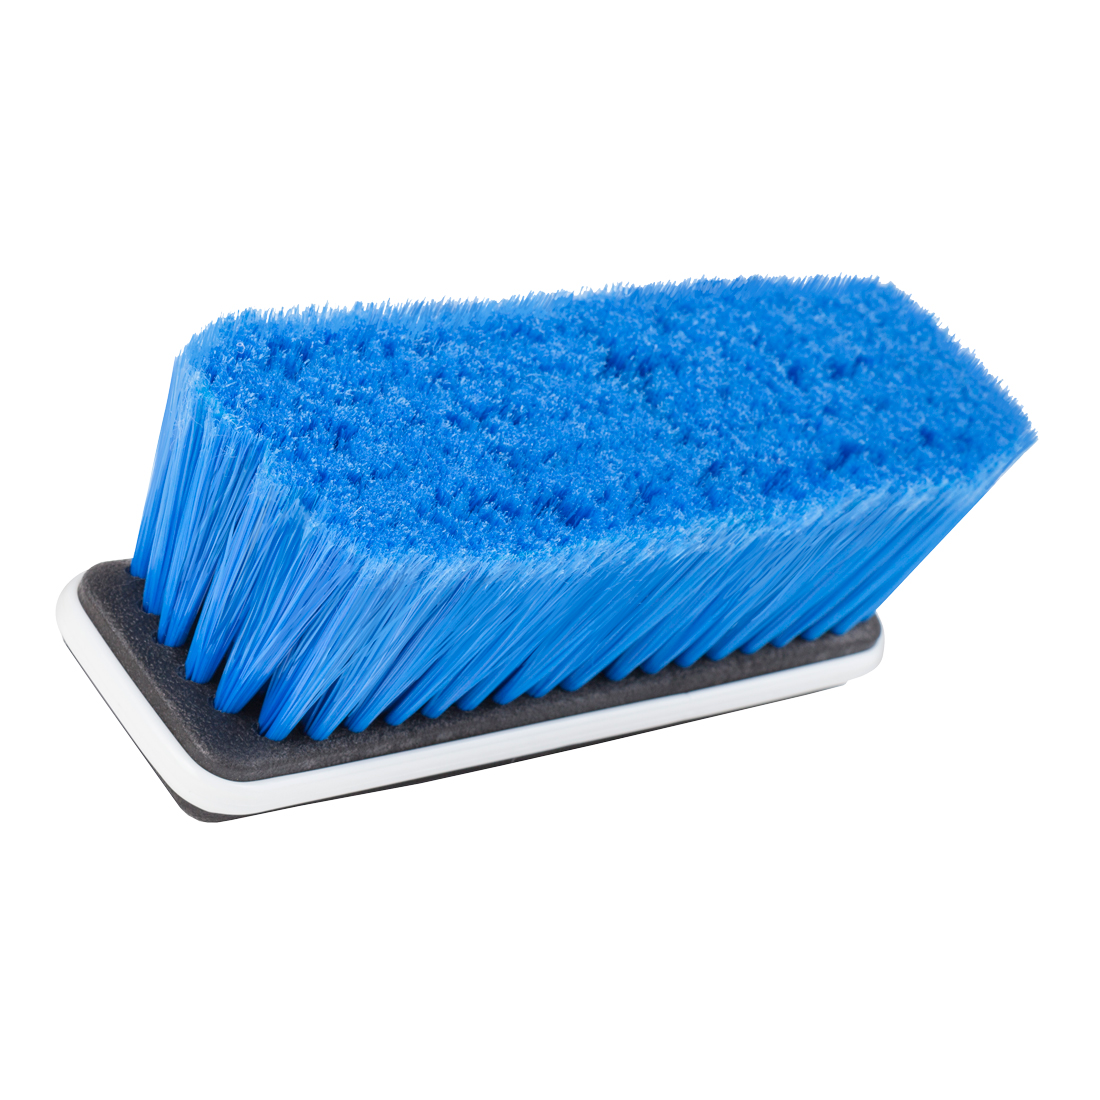 Chemical Resistant Decon Brush image